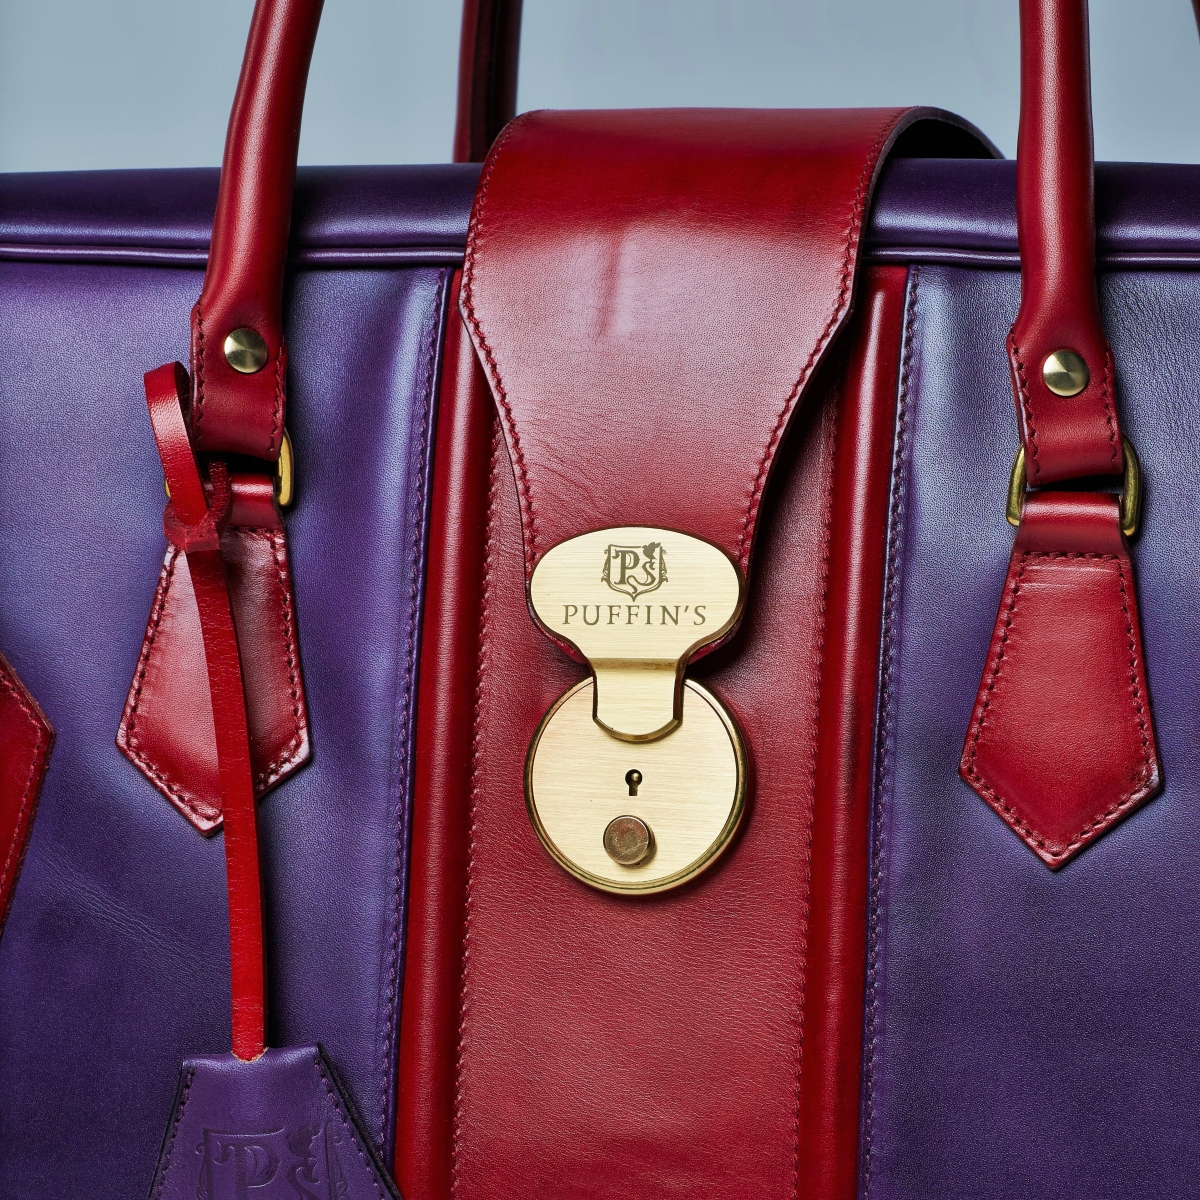 Leather suitcase HOLIDAY red currant & violet ink